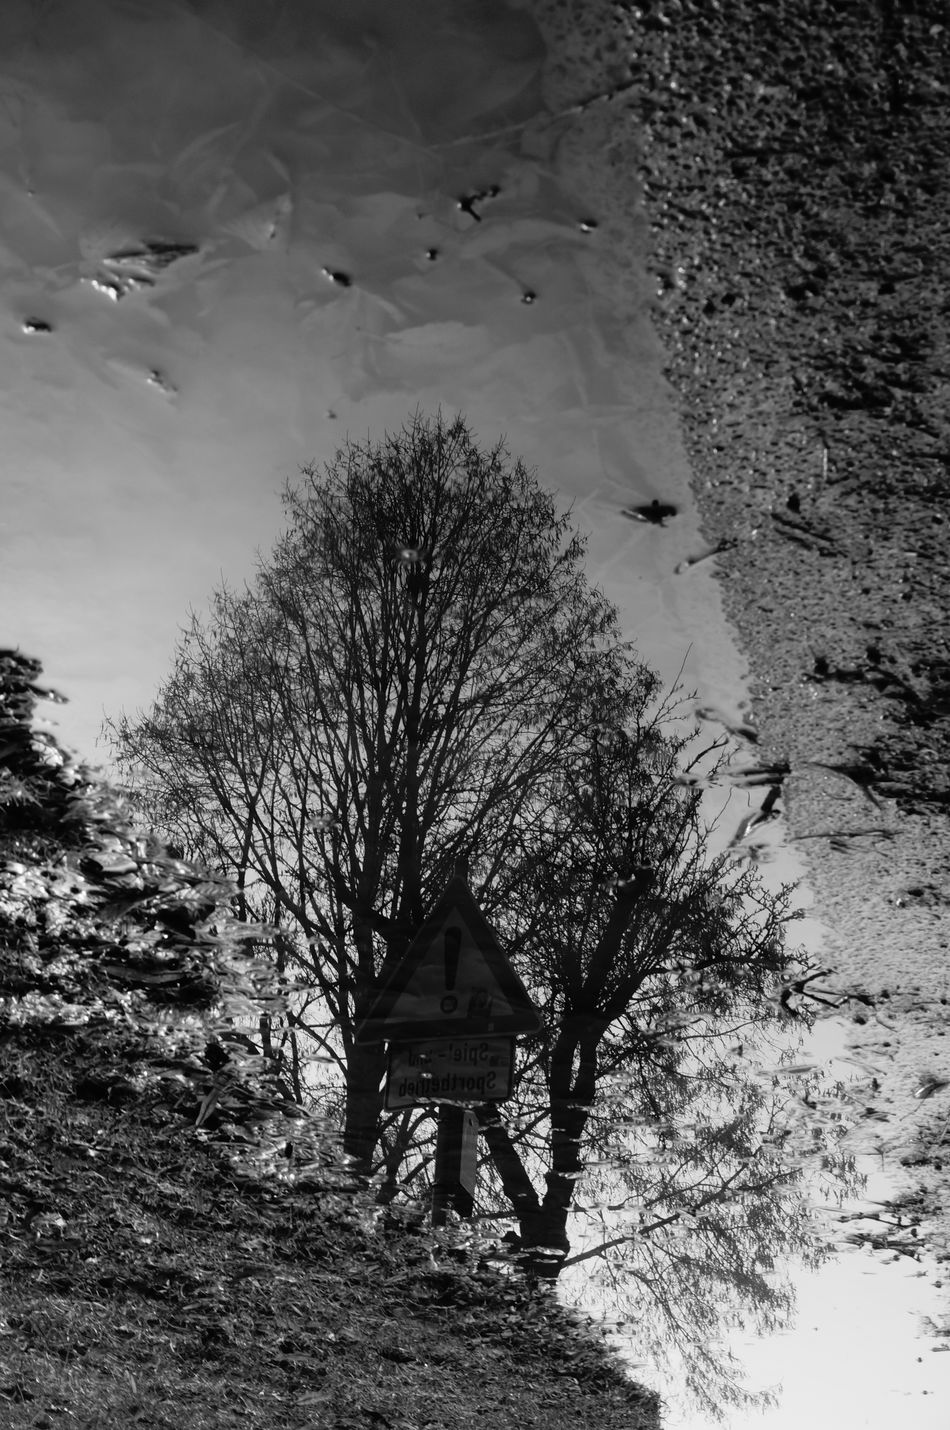 Water Tree Outdoors Nature Sky Day No People Fog Black & White Black And White Nature Reflection Overhead Over Head Over Head View Optical Illusions Optical Illusion